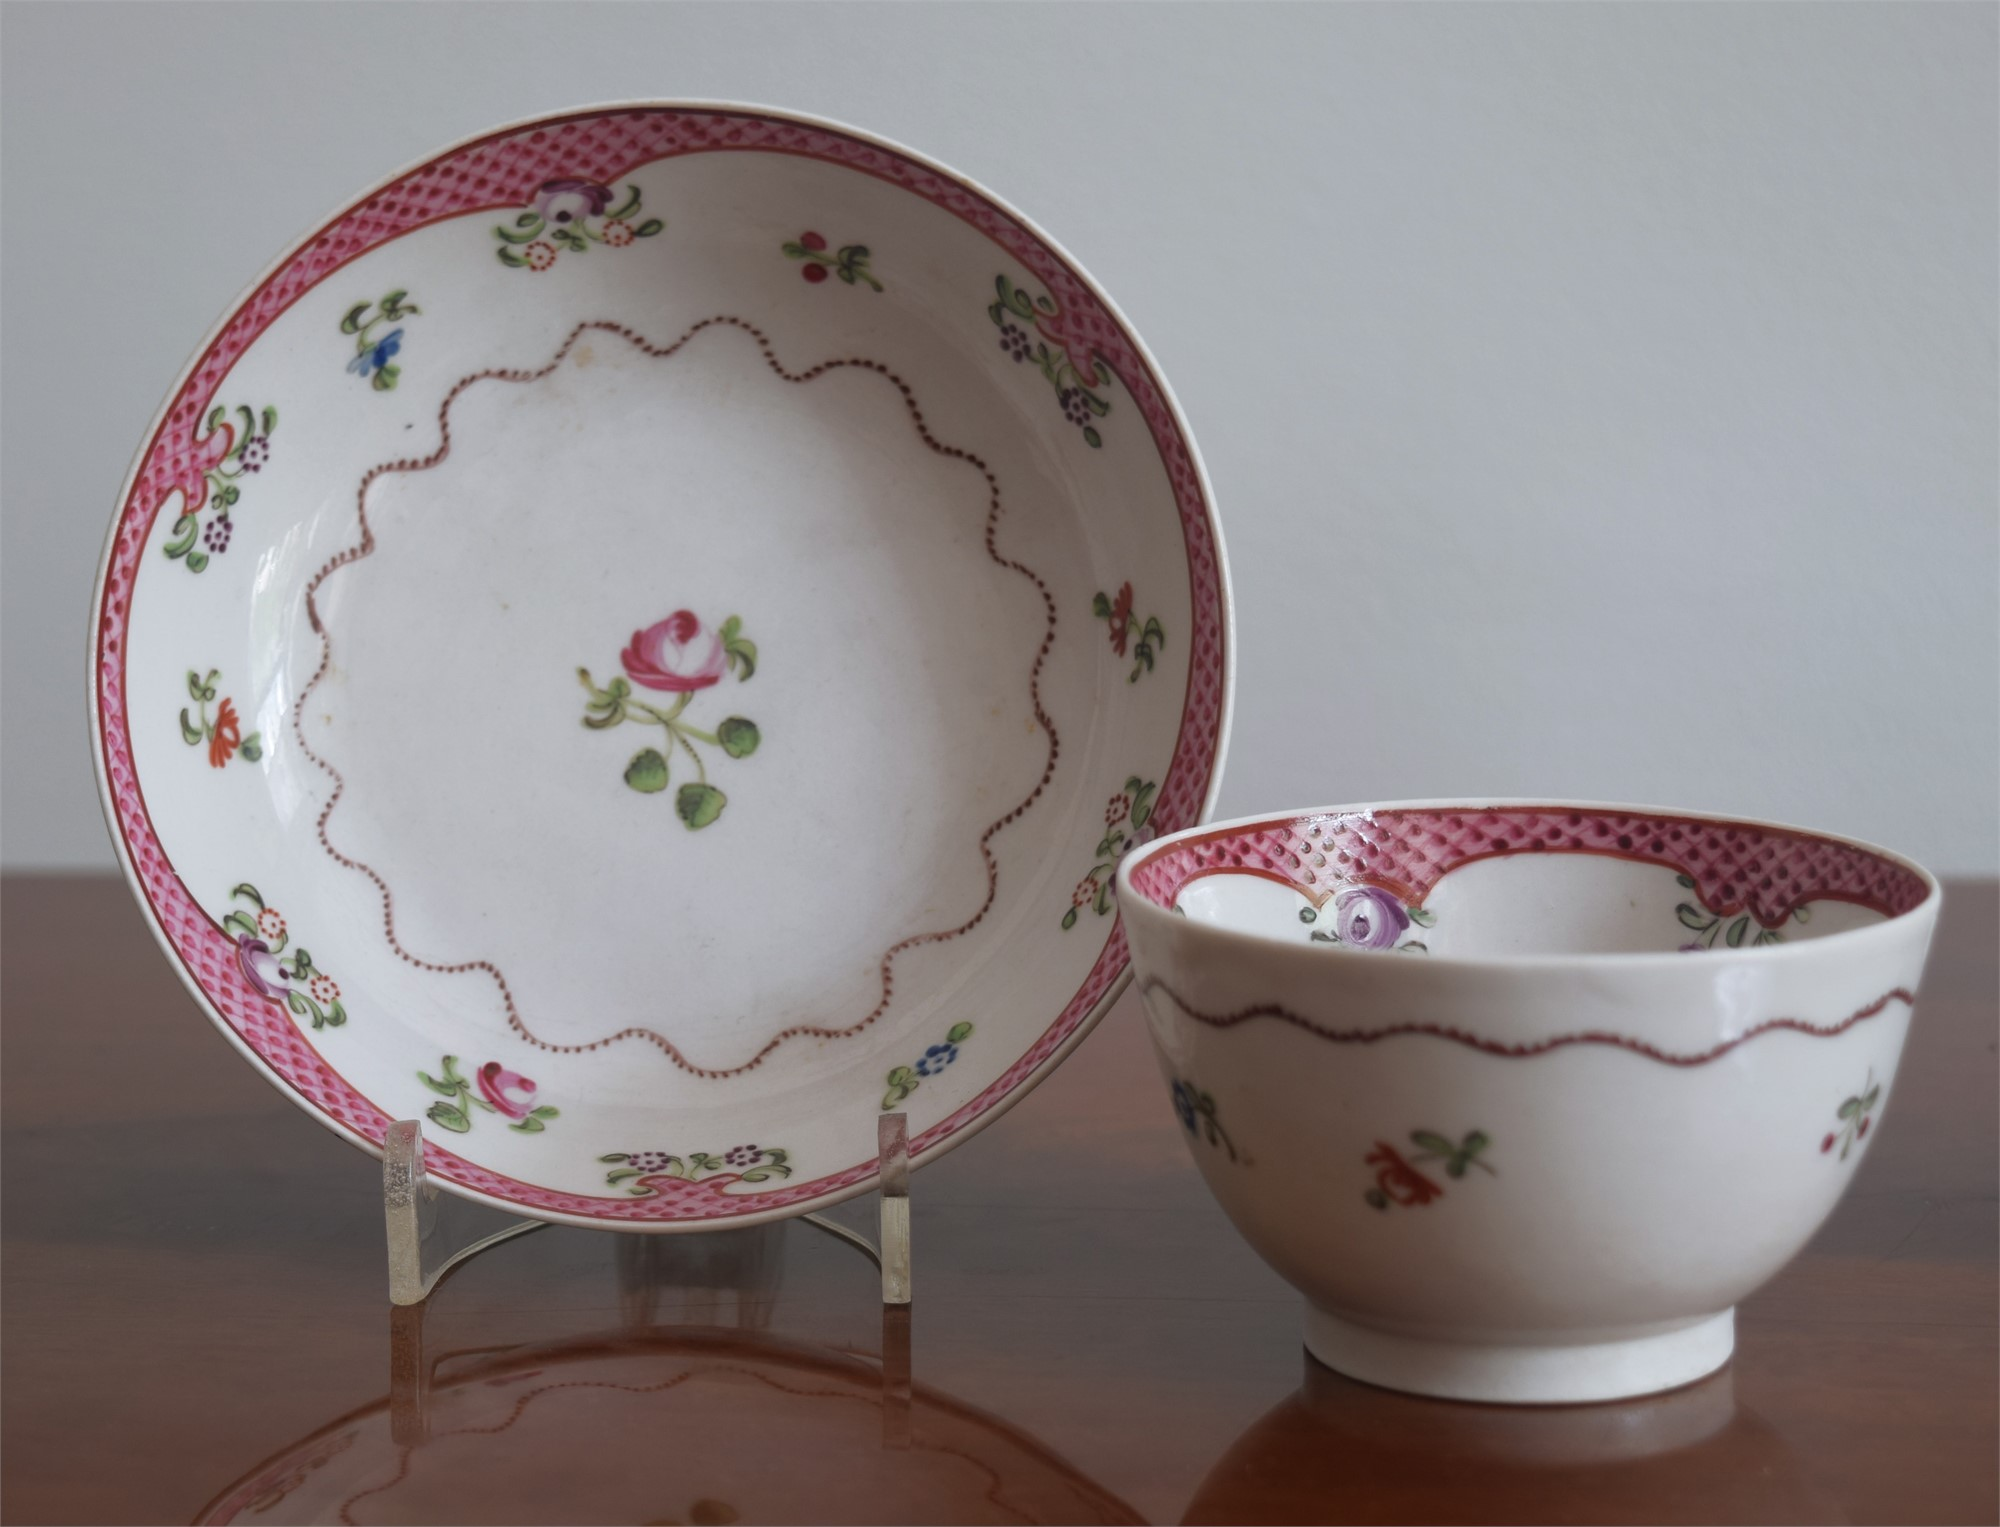 A FAMILLE-ROSE TEACUP AND SAUCER WITH LATTICE RIMS